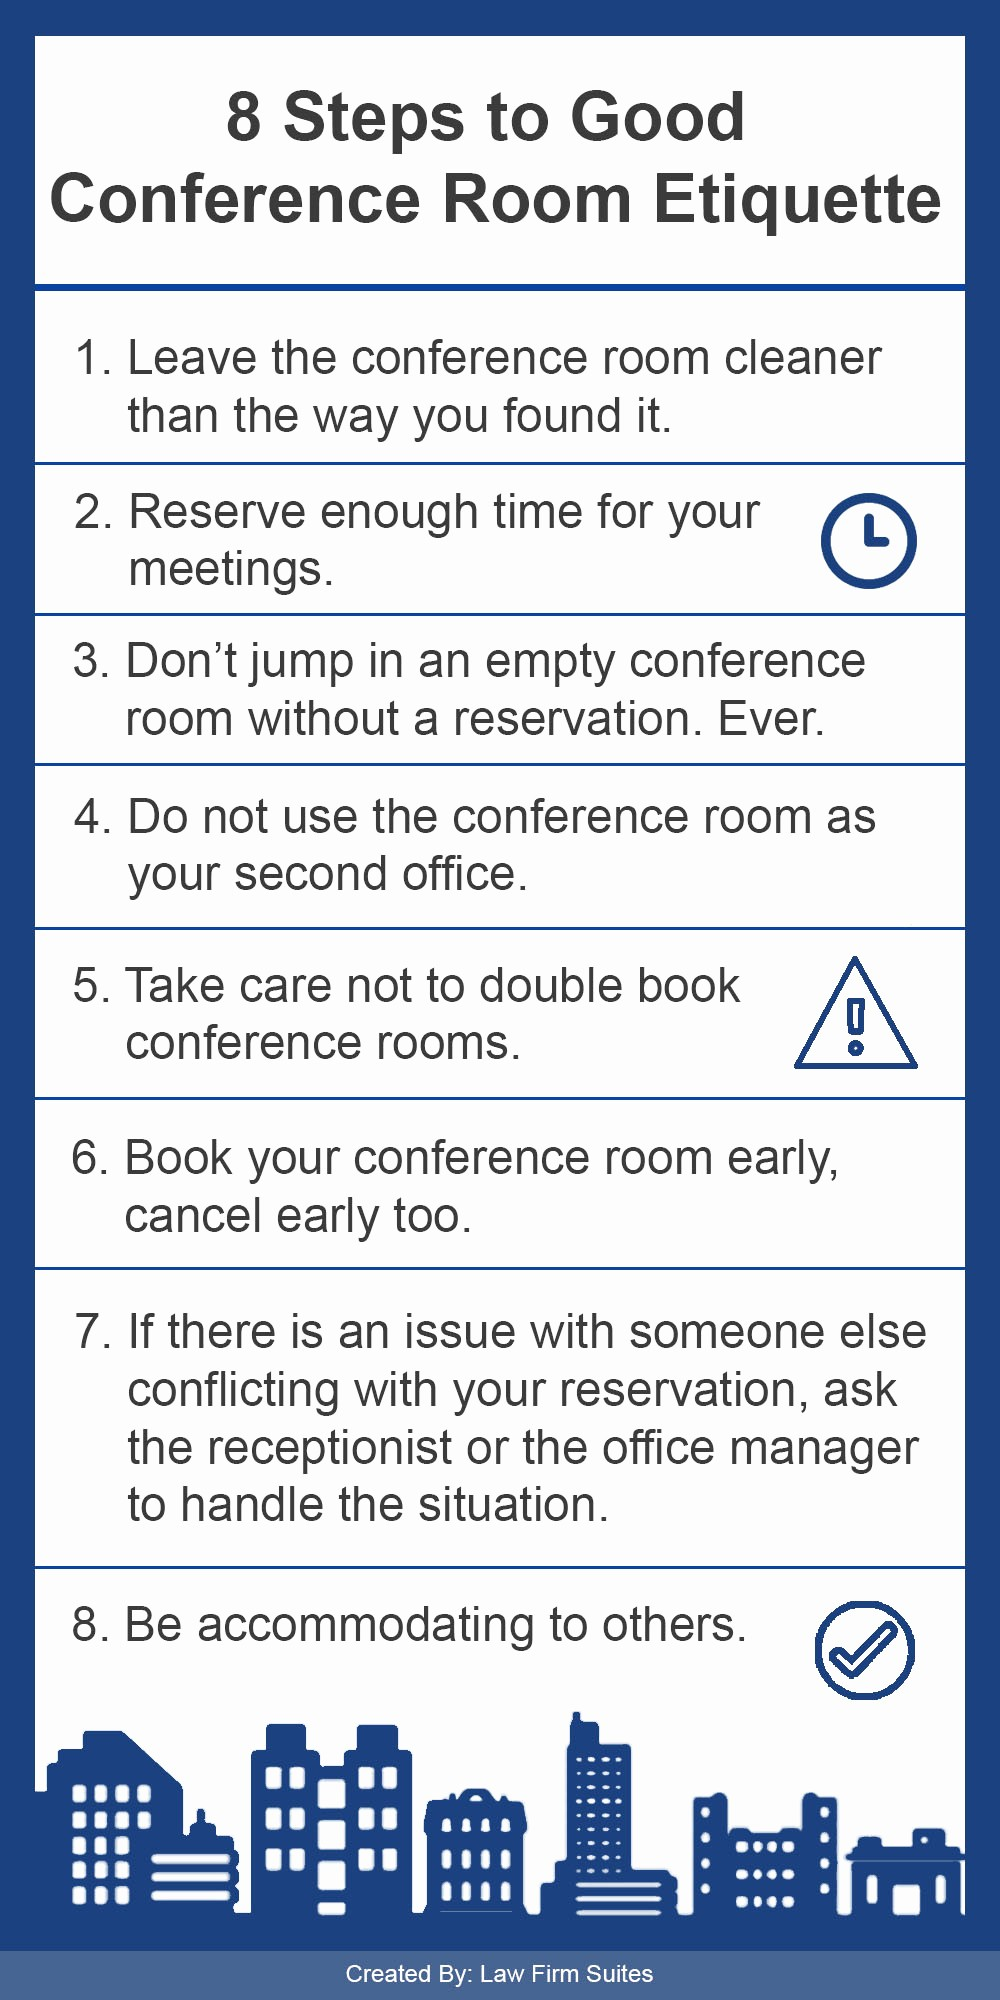 Conference Room Sign Up Template New 8 Steps to Good Conference Room Etiquette